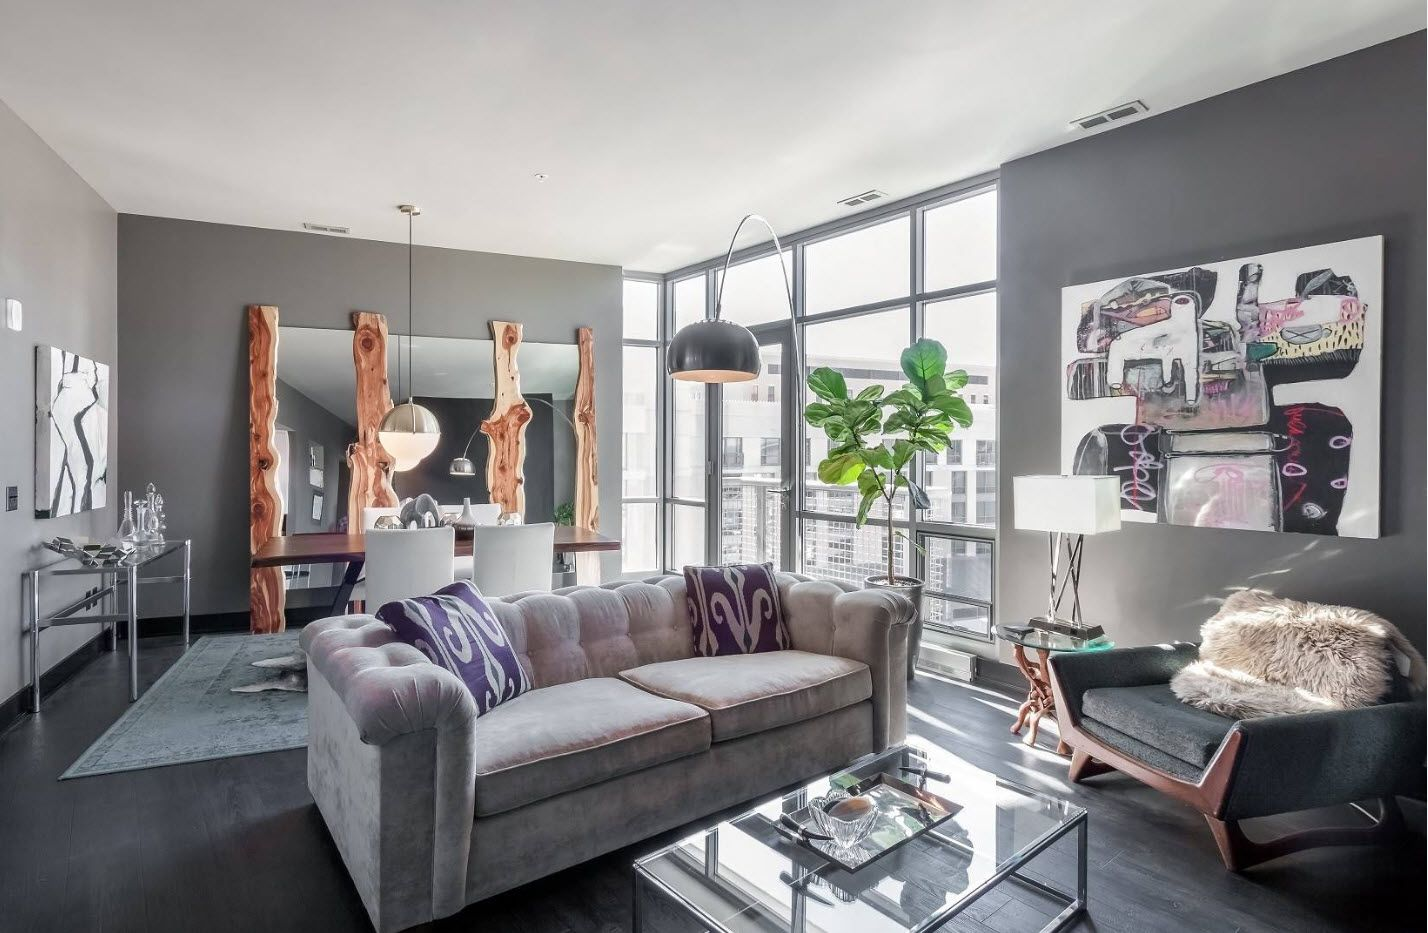 Gray interior decoration and the large window of the one bedroom apartment